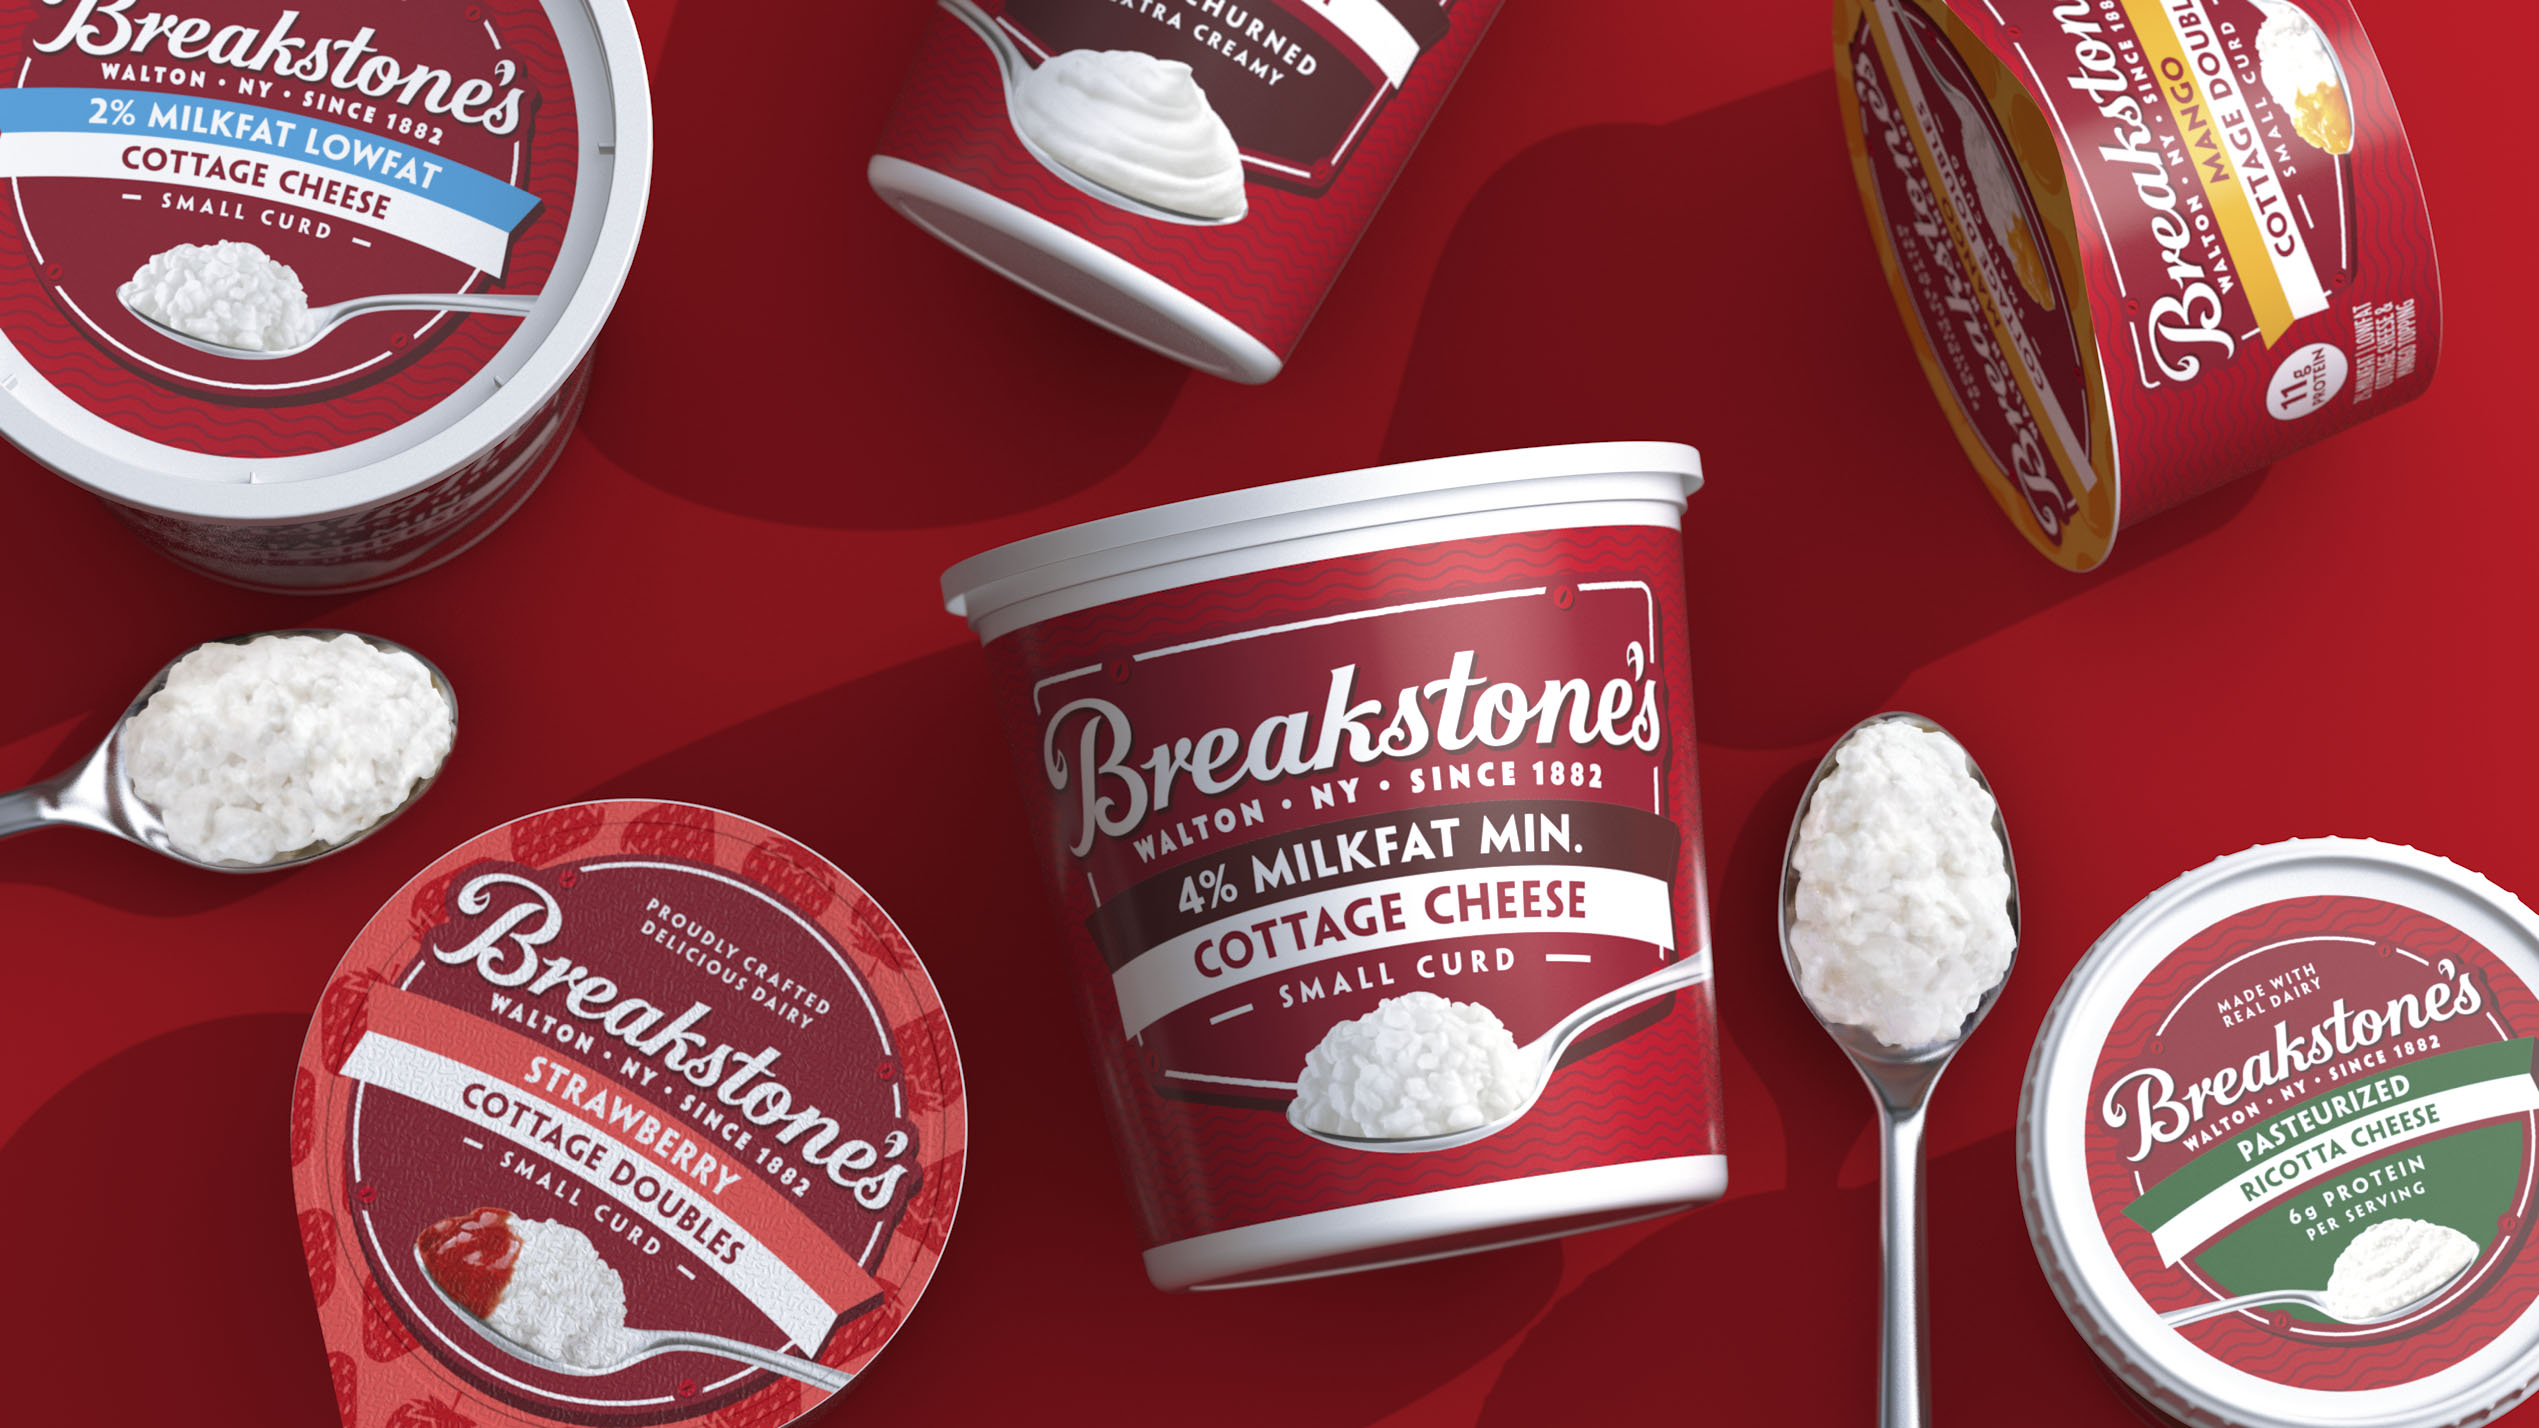 Breakstone's Brings Culture Back to the Dairy Aisle with Brand Overhaul by BrandOpus